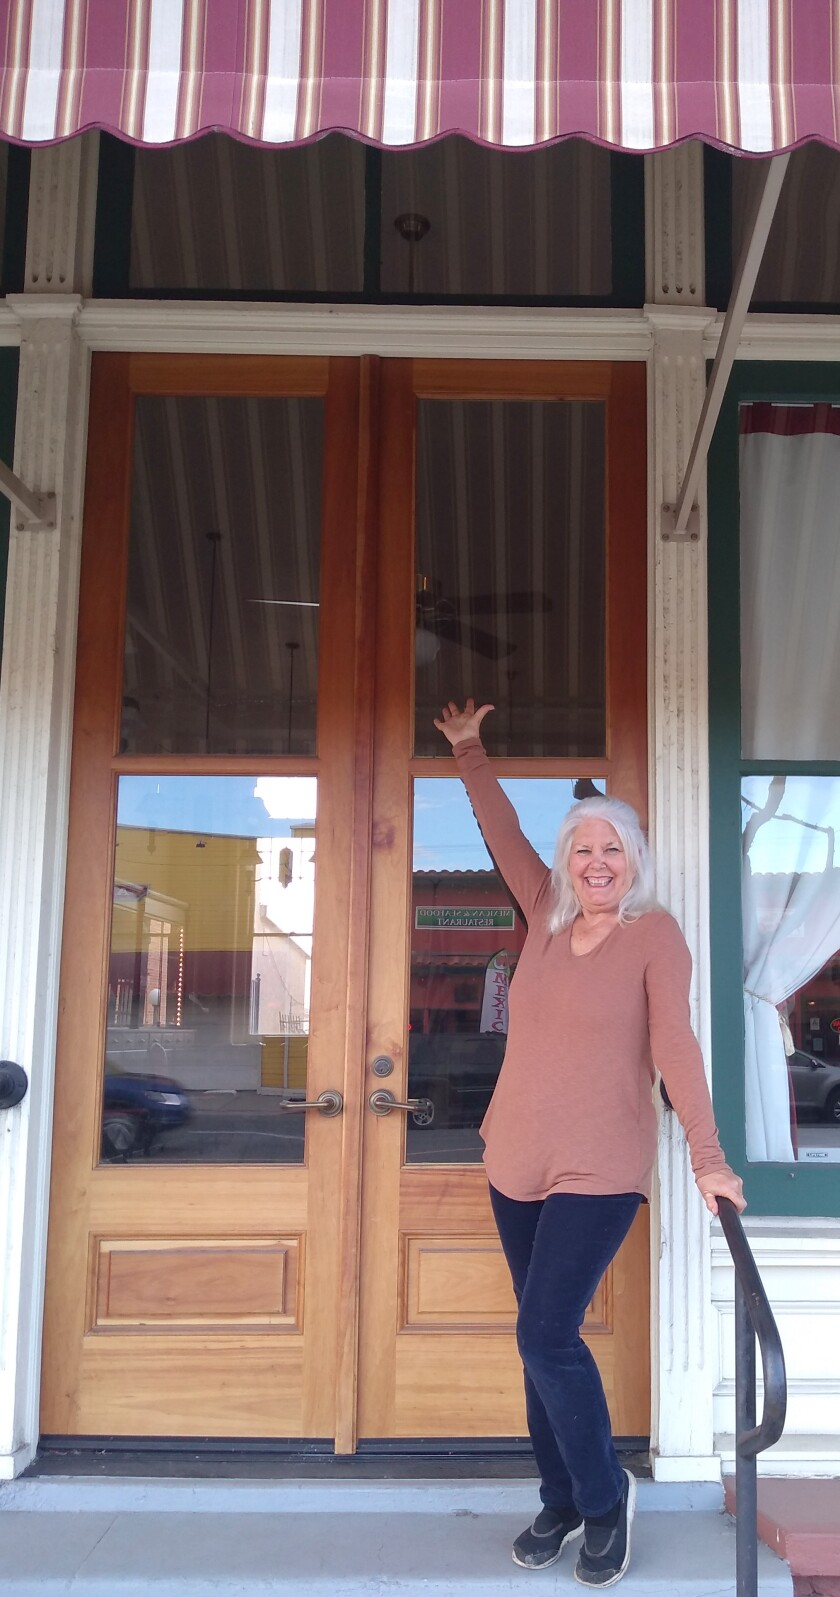 Ramona resident Jill Bacorn will lead the Aging Creatively dance workshop at Ramona Town Hall starting Thursday, April 15.